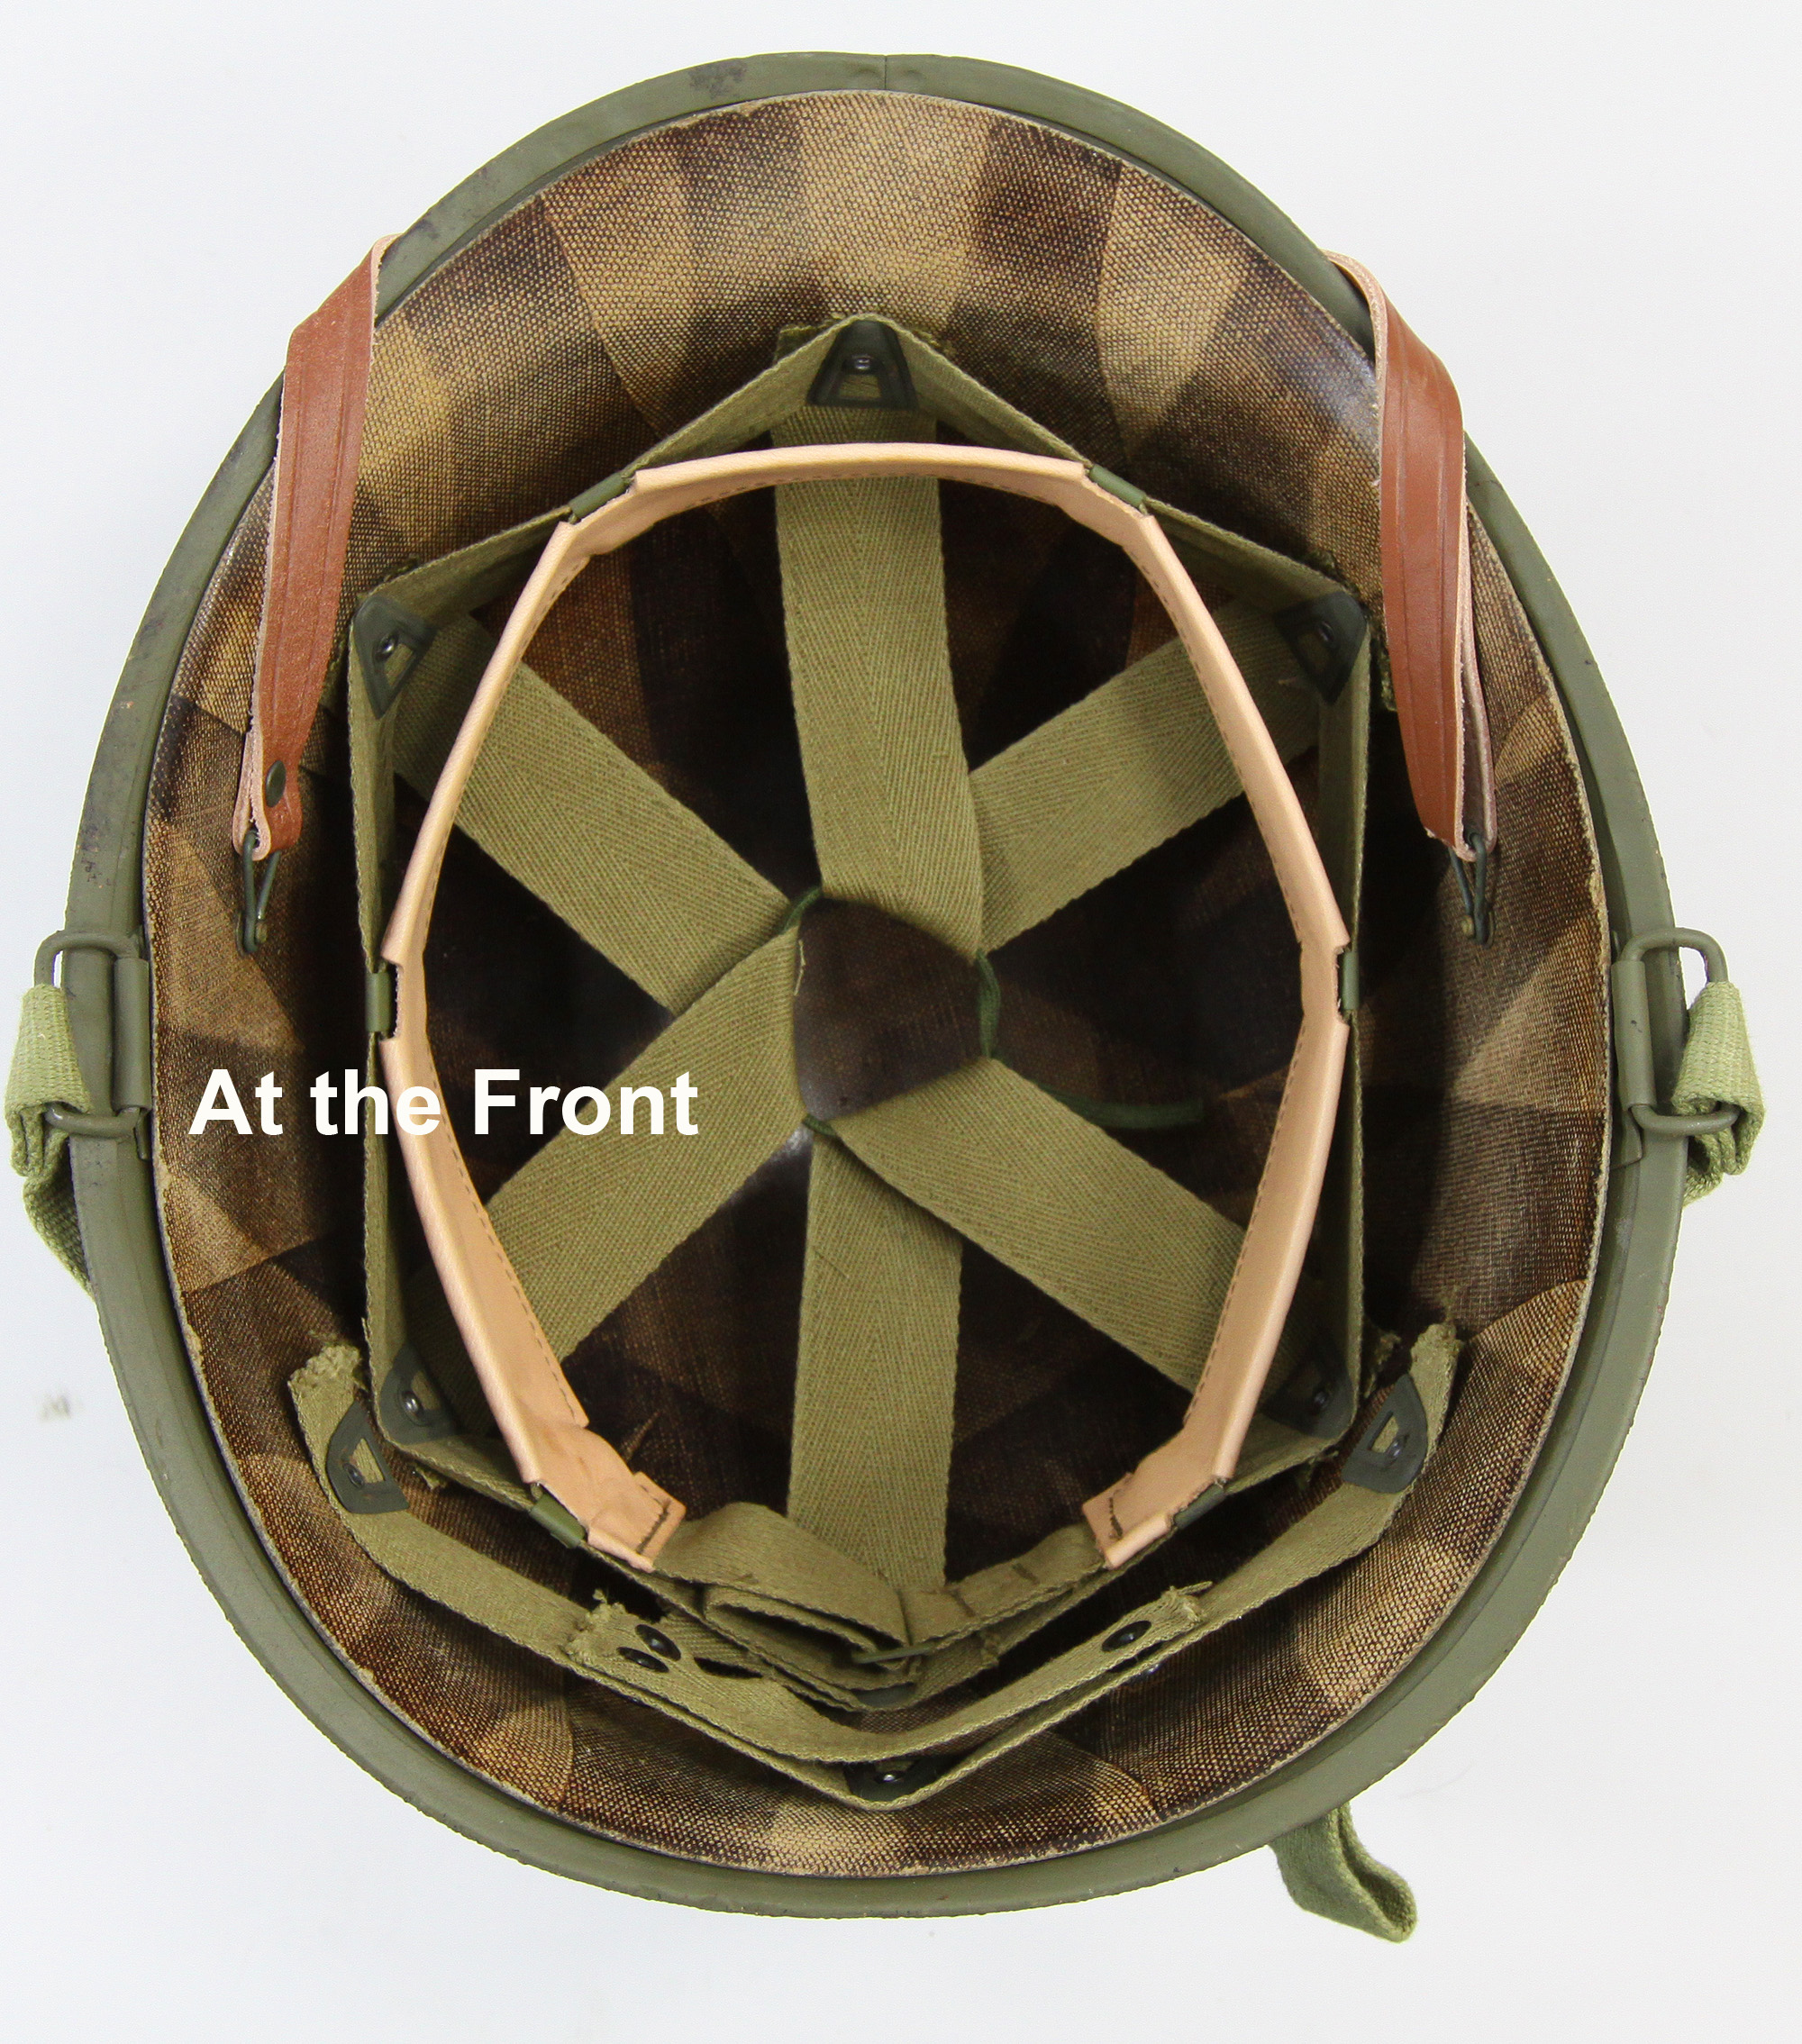 WW2 US Helmets For Sale, Buy WW2 US Helmets Online